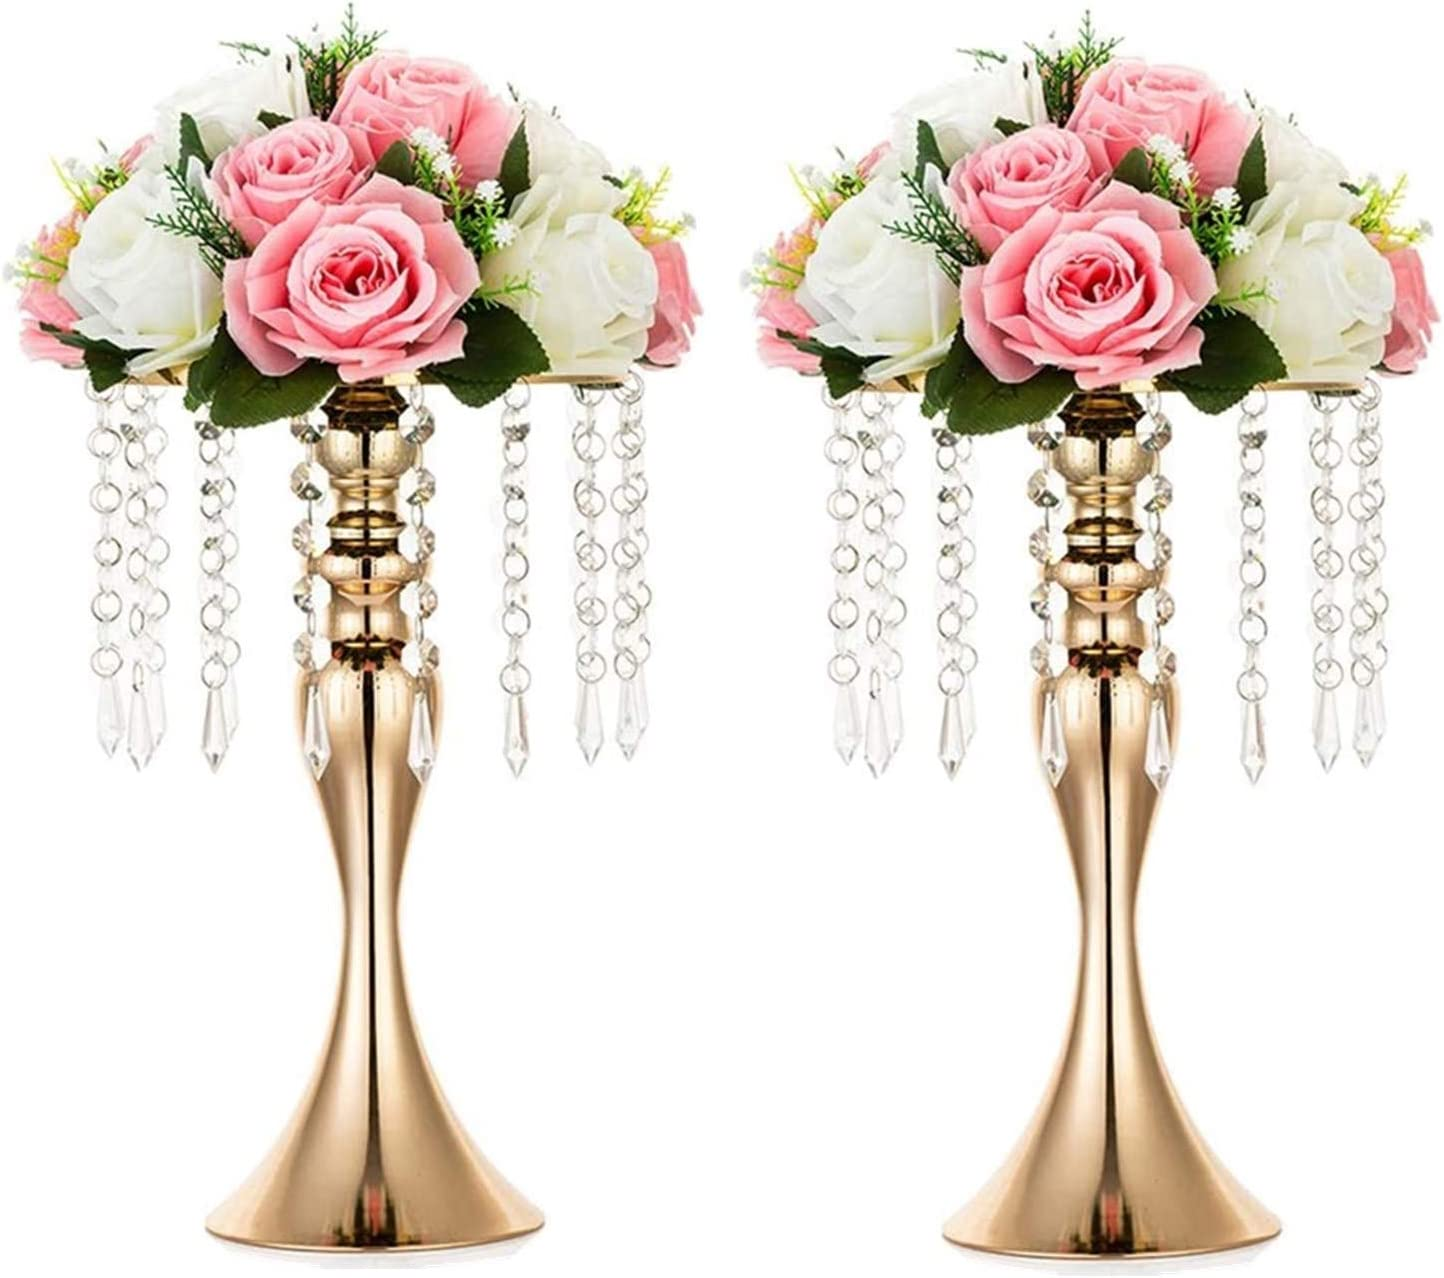 Sziqiqi Floral Centerpiece Riser Gold Tall Flower Centerpiece Stand with Crystal Beads for Event Party Wedding Reception Center Piece Floral Arrangements, Pack of 2 Gold 13.8''/35cm